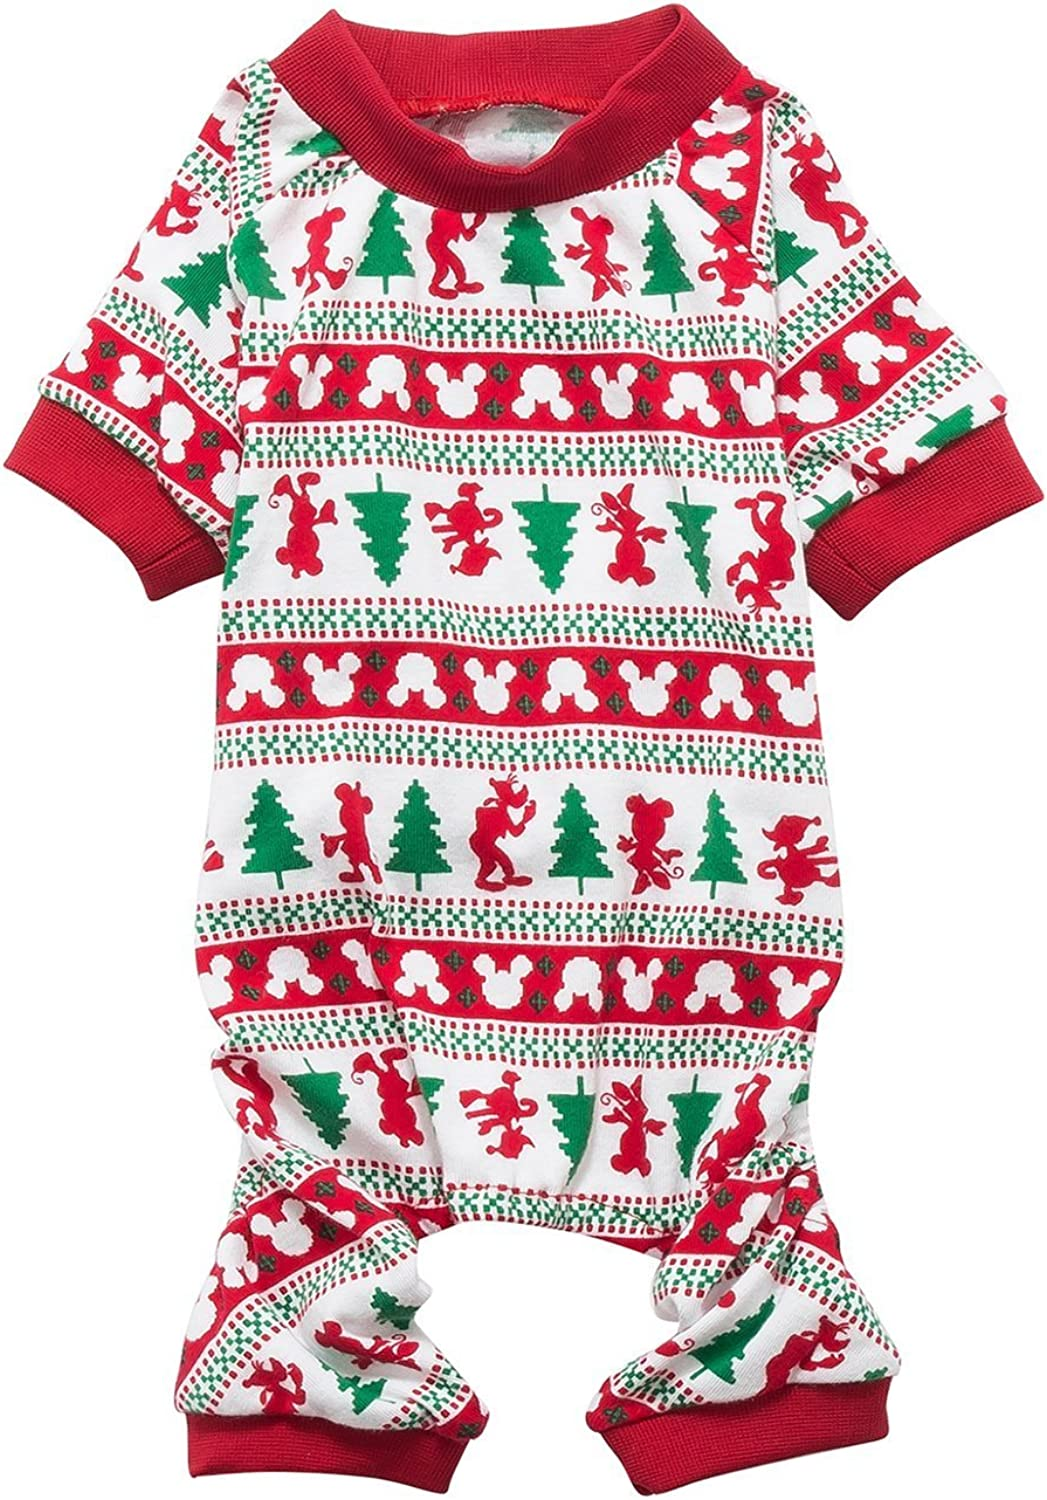 Christmas Tree Cotton Pet Dog Pajamas for XSmall Dogs Cats Kitten,Back Length 9  XSmall